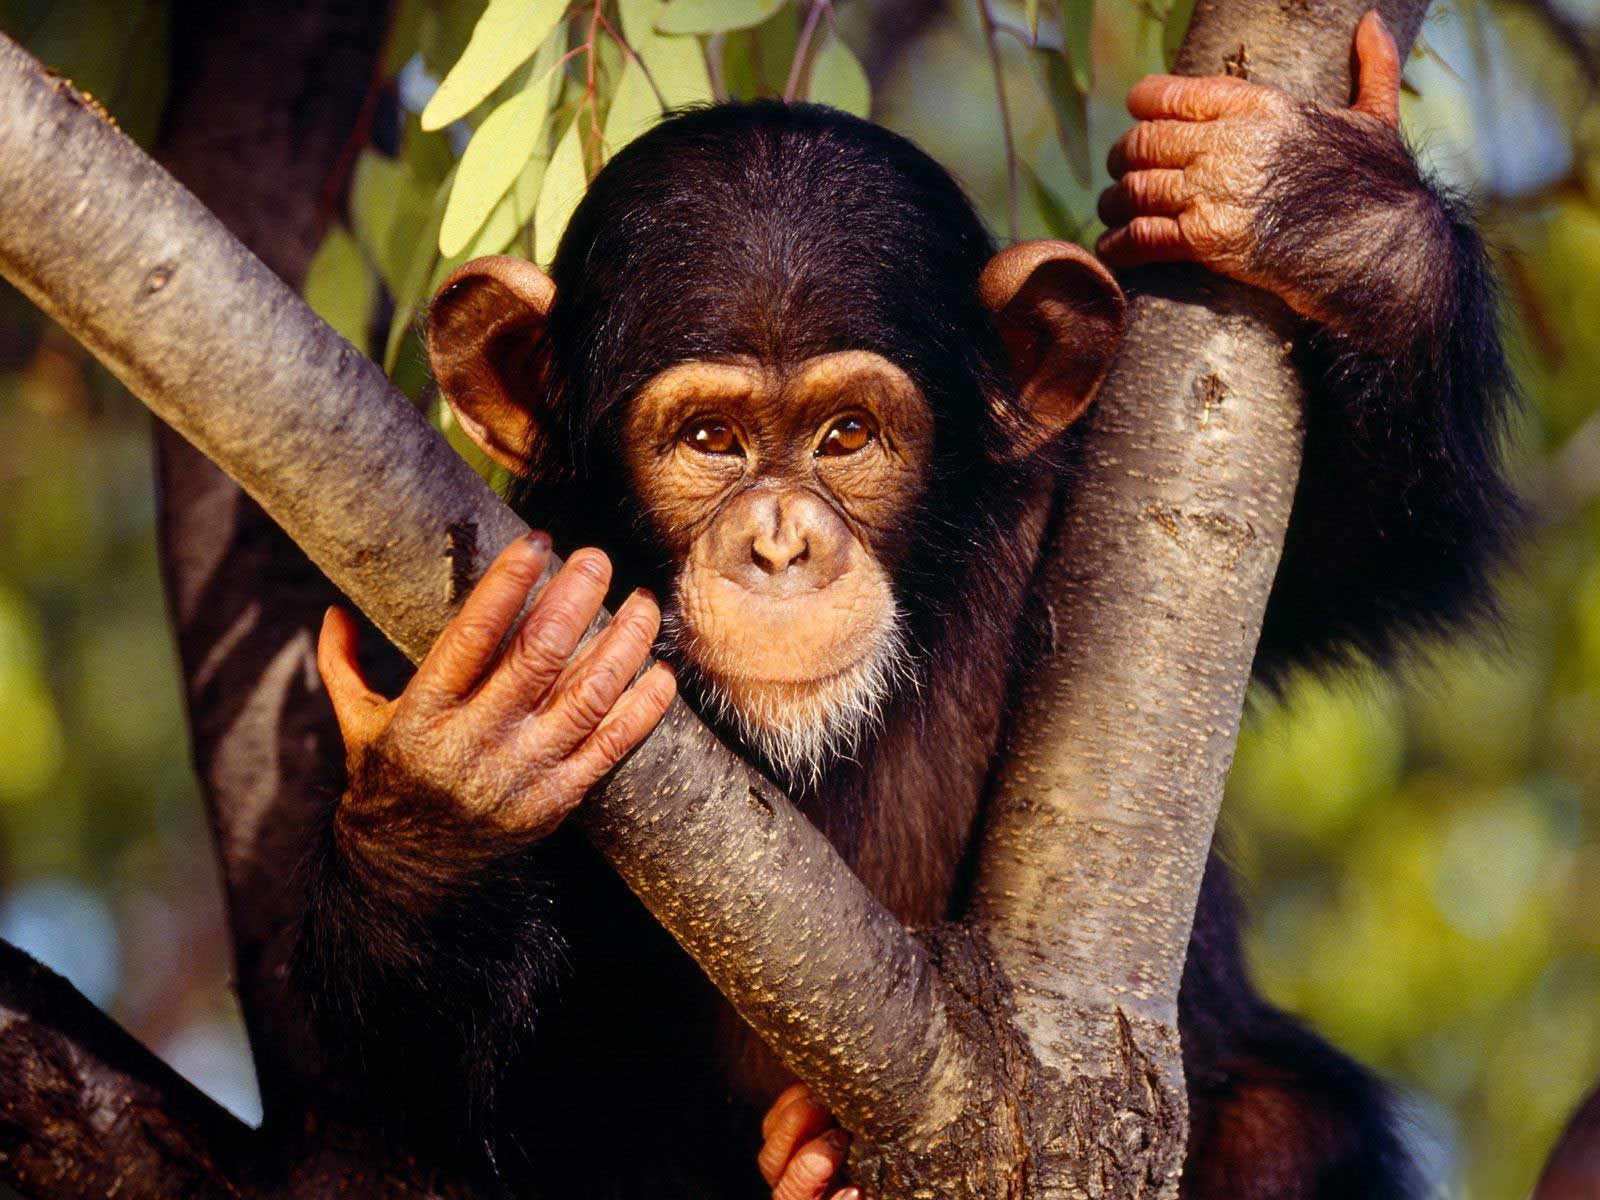 Chimpanzee widescreen wallpapers